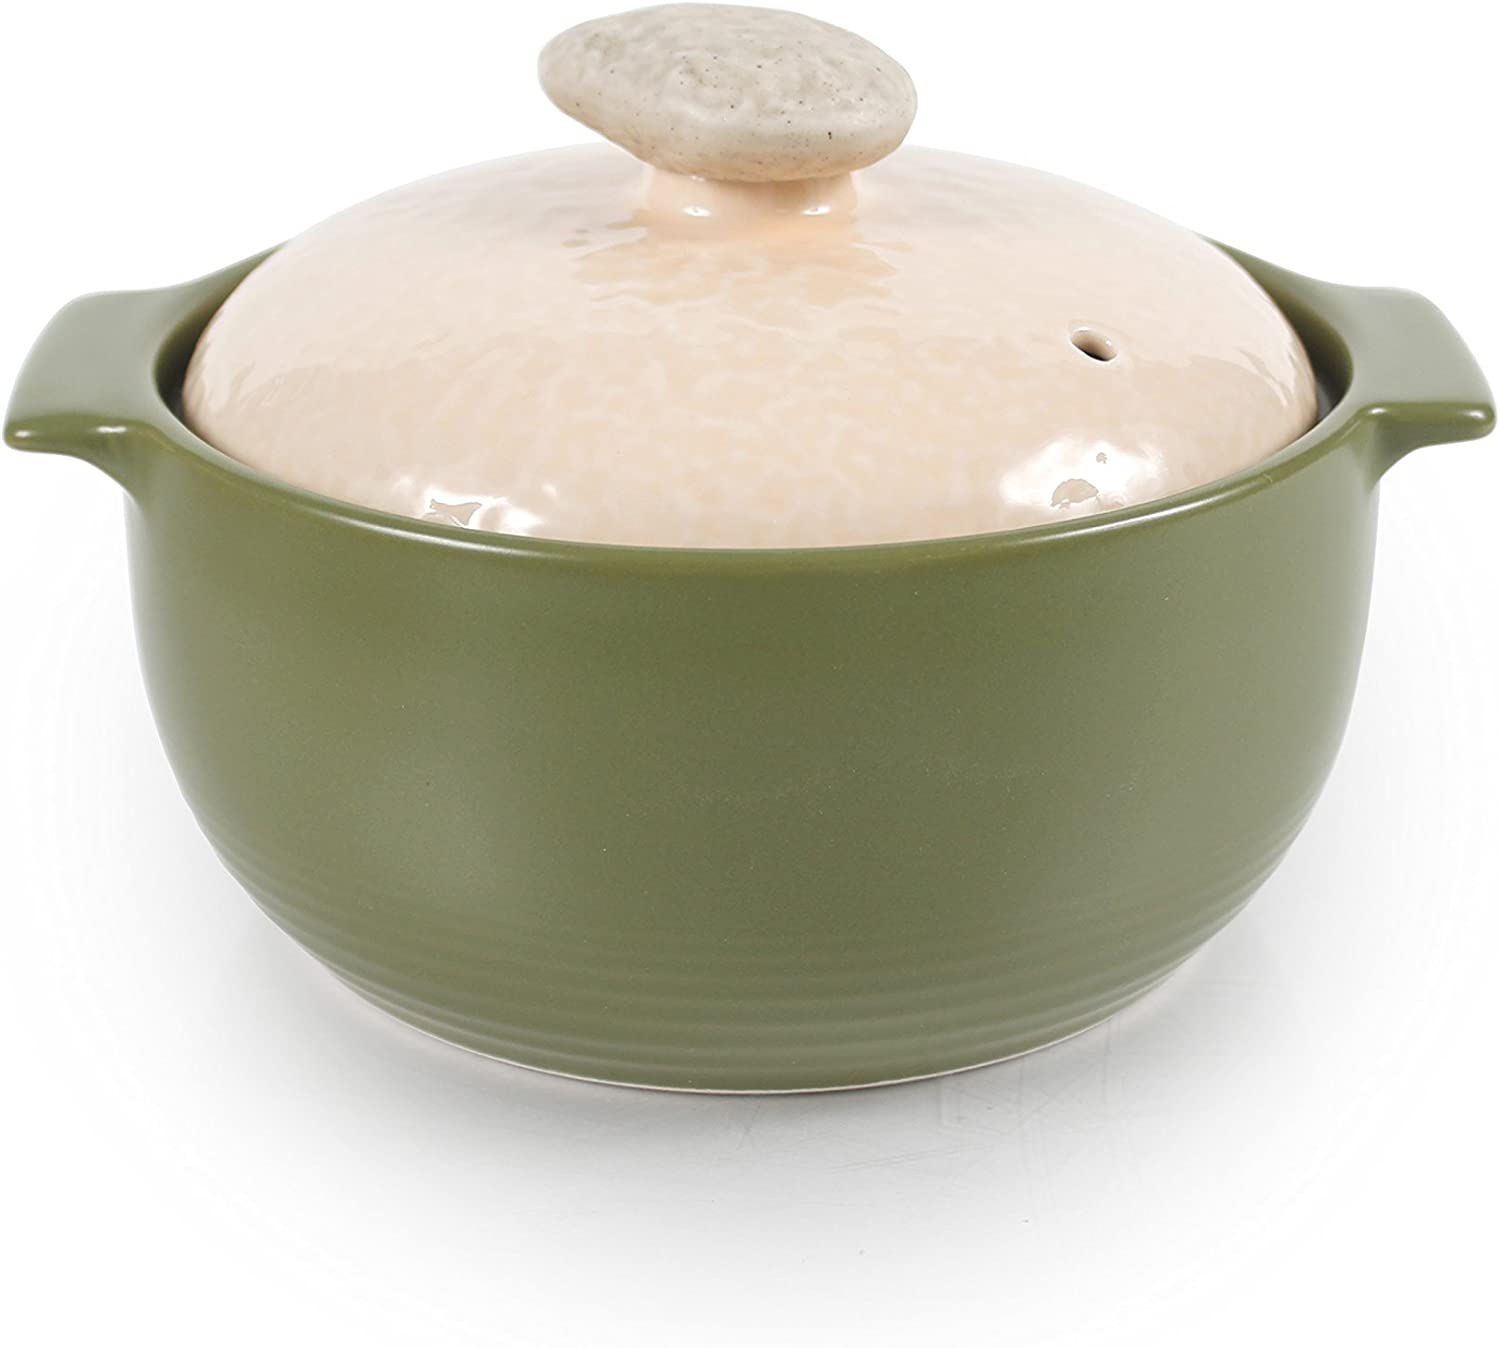 Neoflam 1 Quart Non-Stick Ceramic Casserole Pot, Dutch Oven, Clay Pot, Stockpot for Stew, Soup, Steam, Scratch Resistant, Refrigerator, Oven Safe, Heat Resistant up to 752F with White Lid, Lime